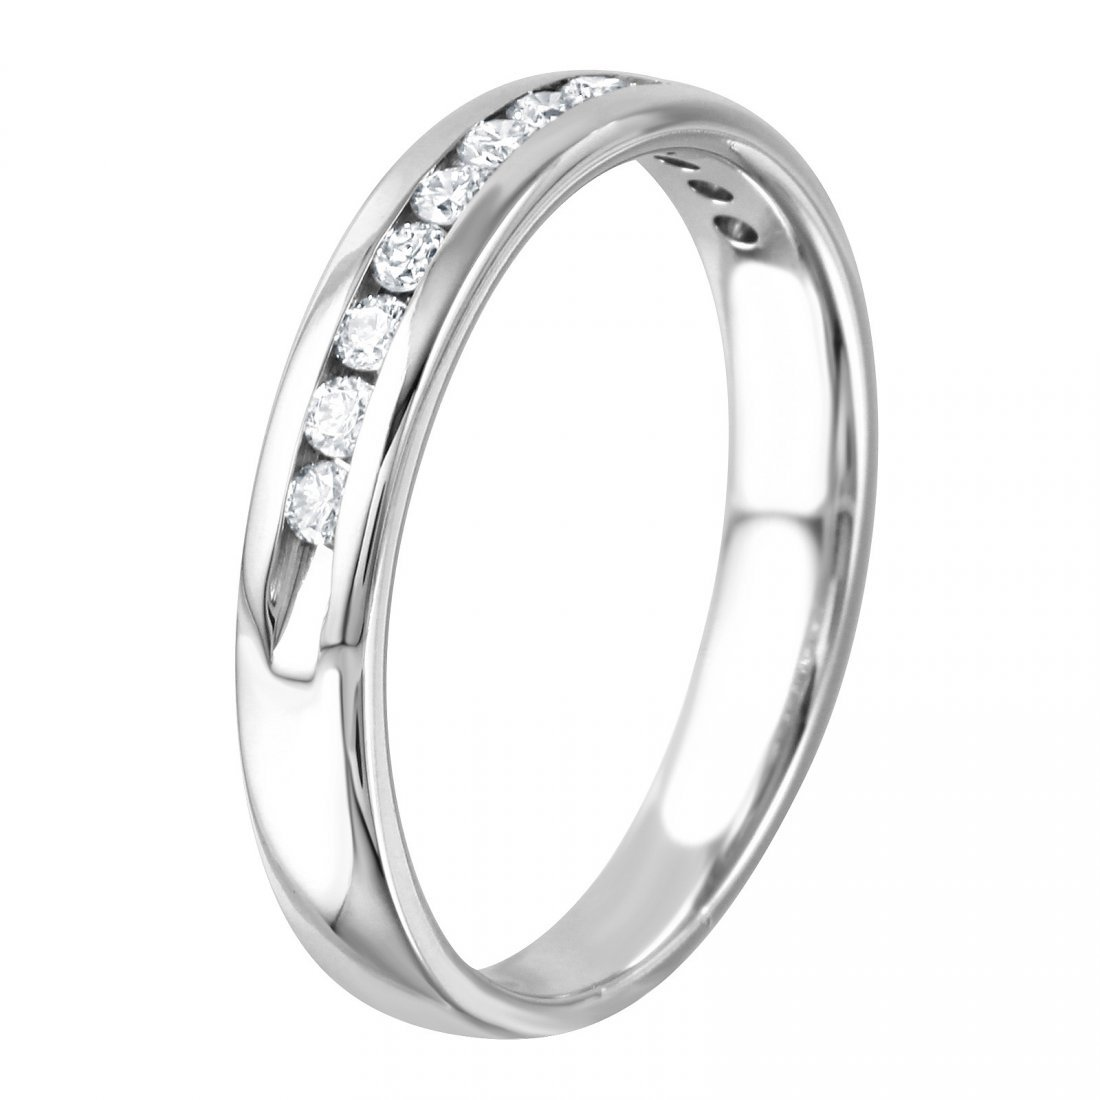 14K White Gold Diamond Wedding Band, 0.2 ctw - 2